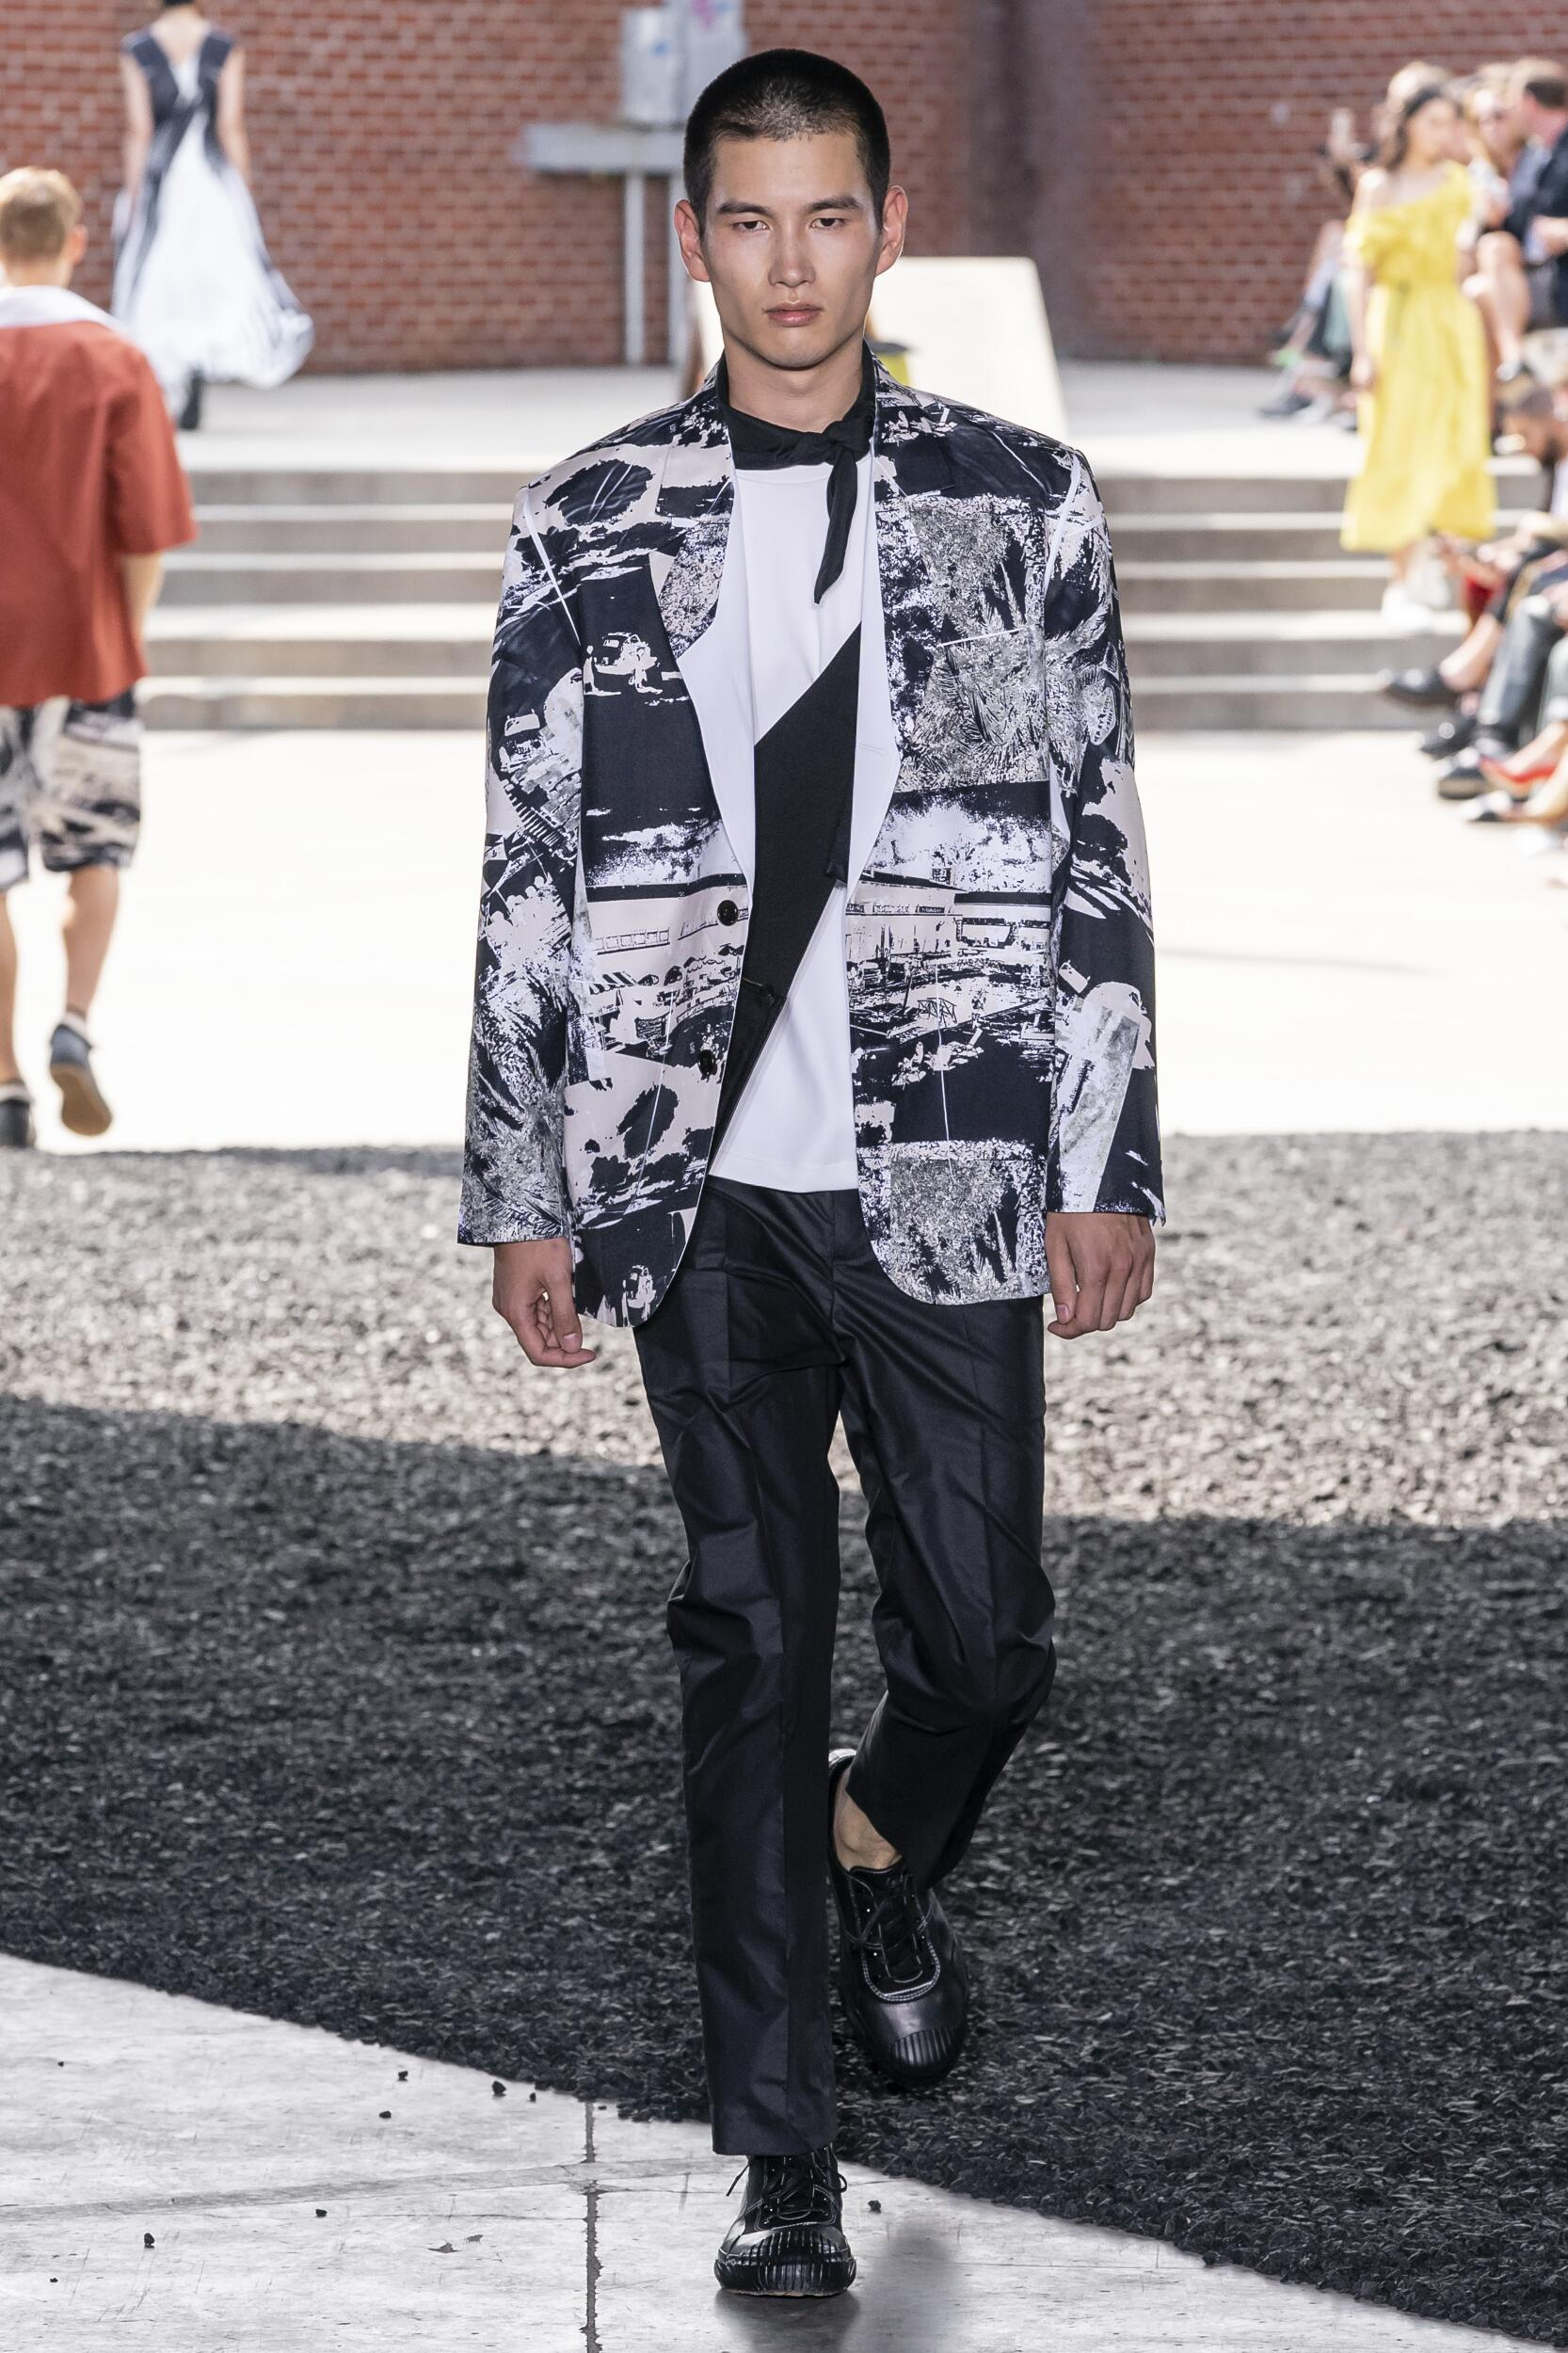 Man Spring 2020 Fashion Trends 3.1 Phillip Lim